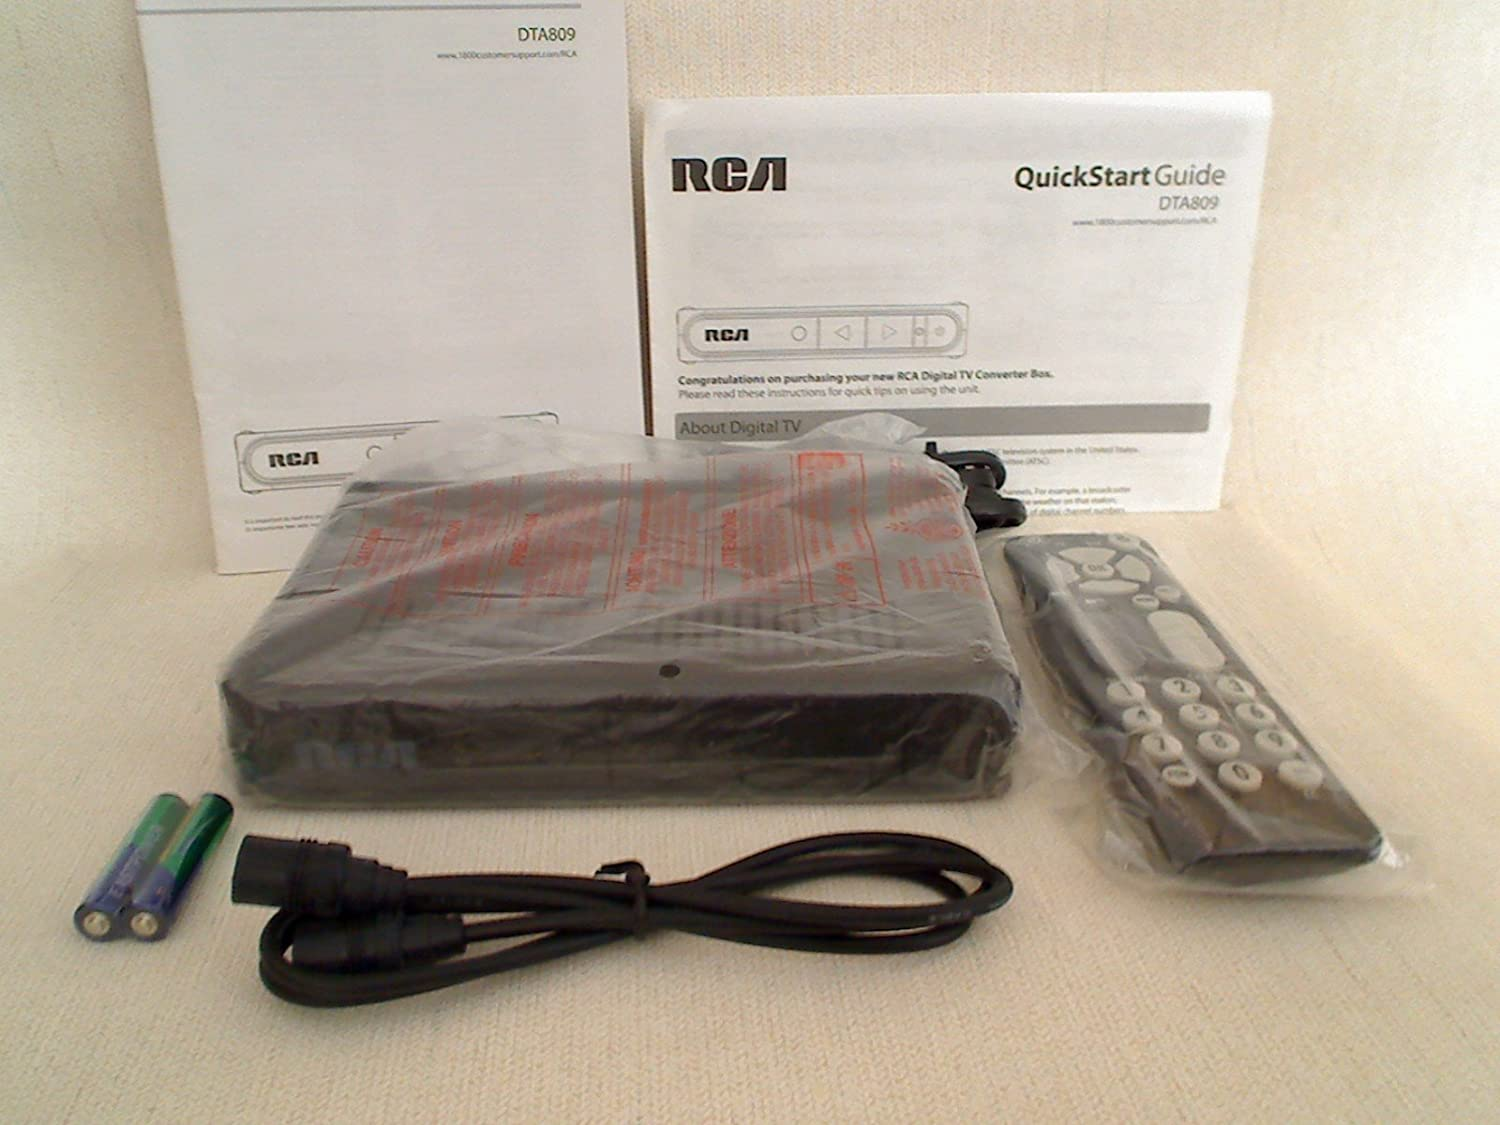 rca dta809 manual car owners manual u2022 rh karenhanover co RCA TV Converter Box Manual RCA Converter Box Manual PDF